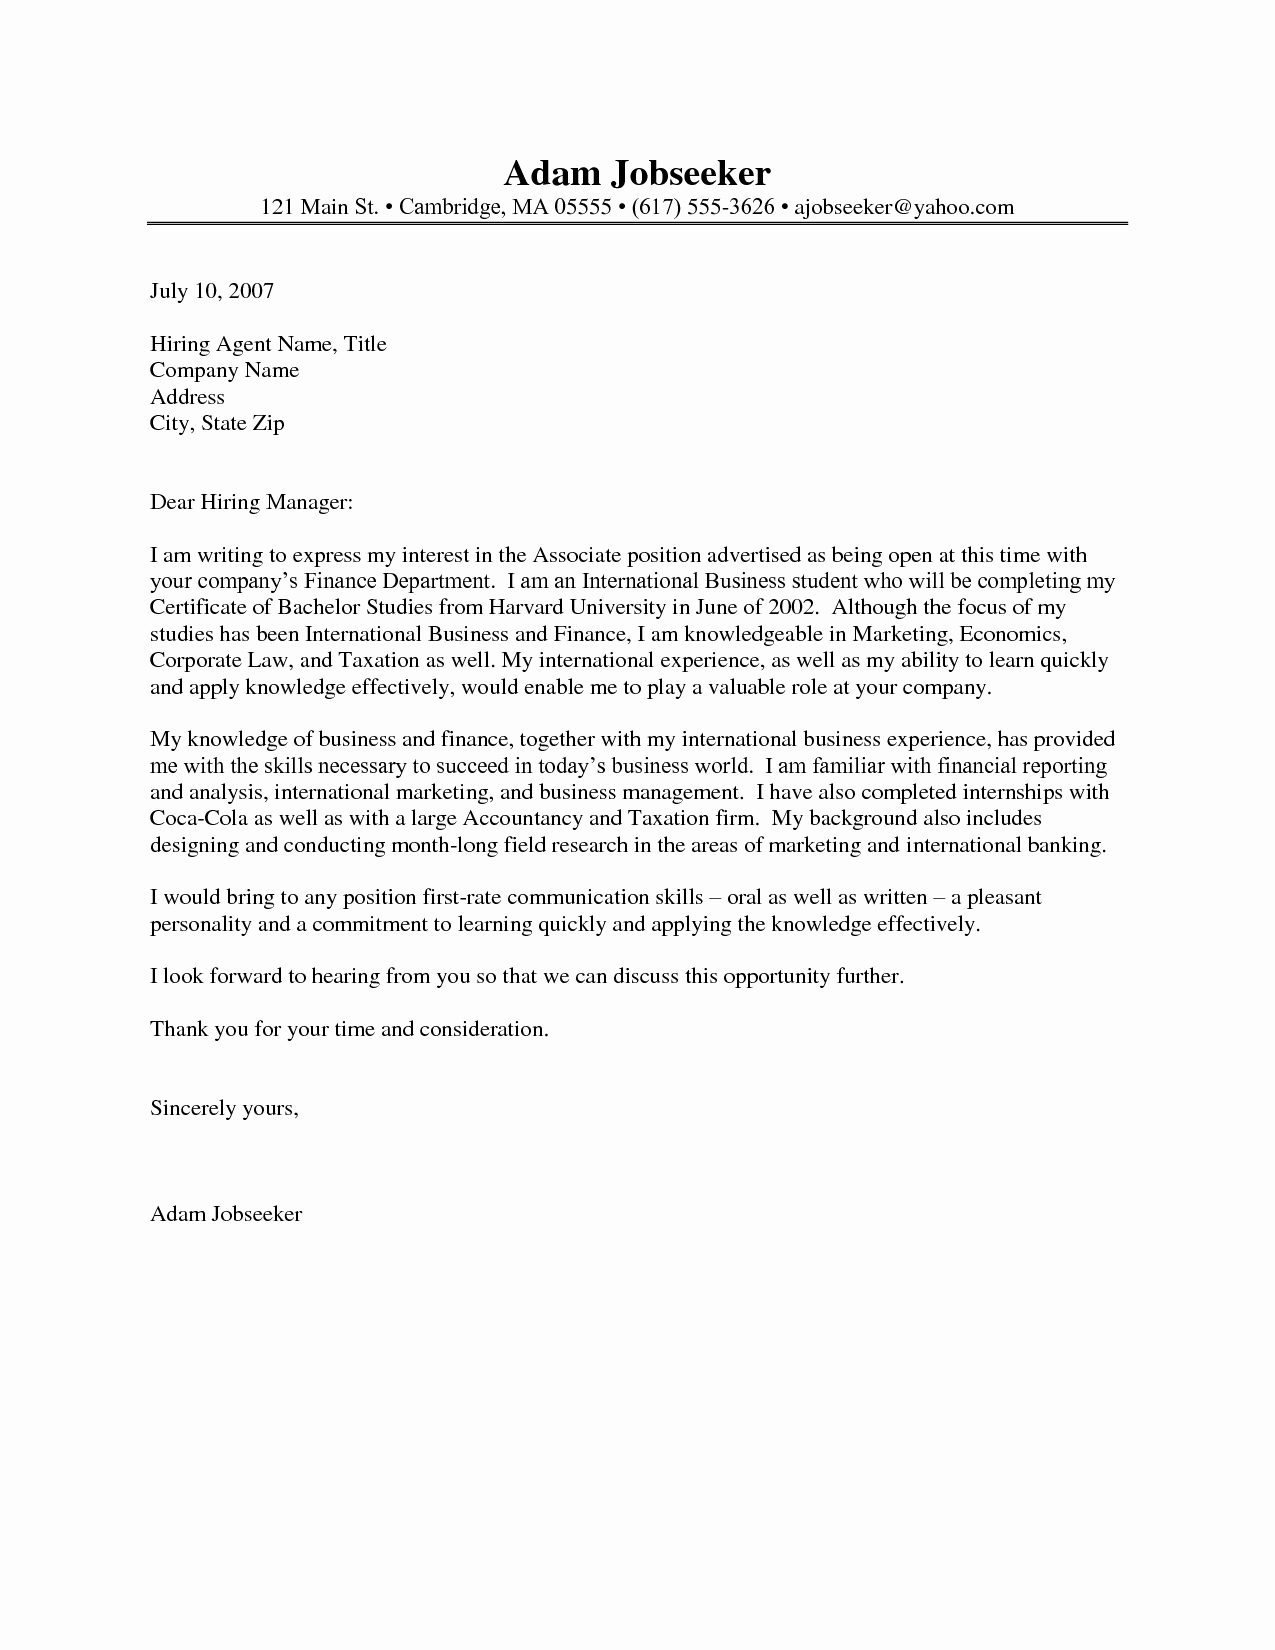 Internship Cover Letter Sample New Example Cover Letter for Internship